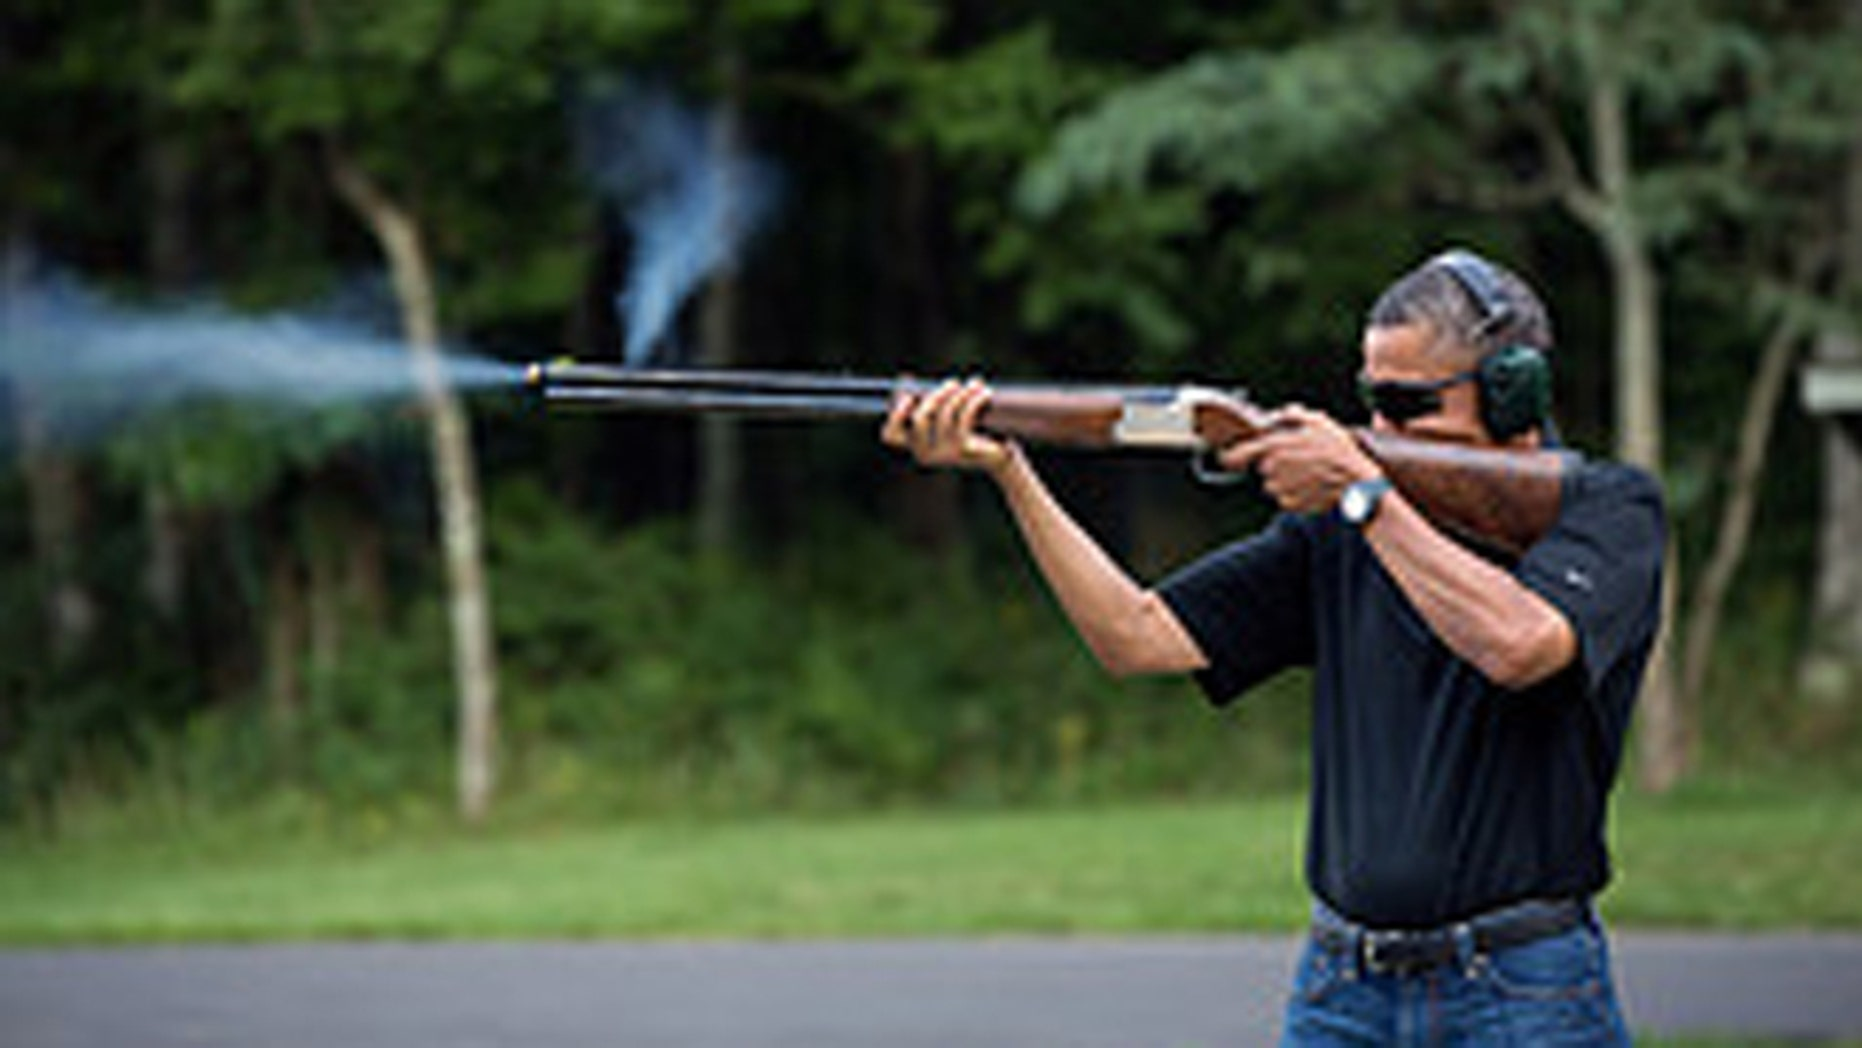 Aug. 14, 2012. In this White House photo, President Obama purportedly shoots at clay targets at Camp David, near Frederick, Md.